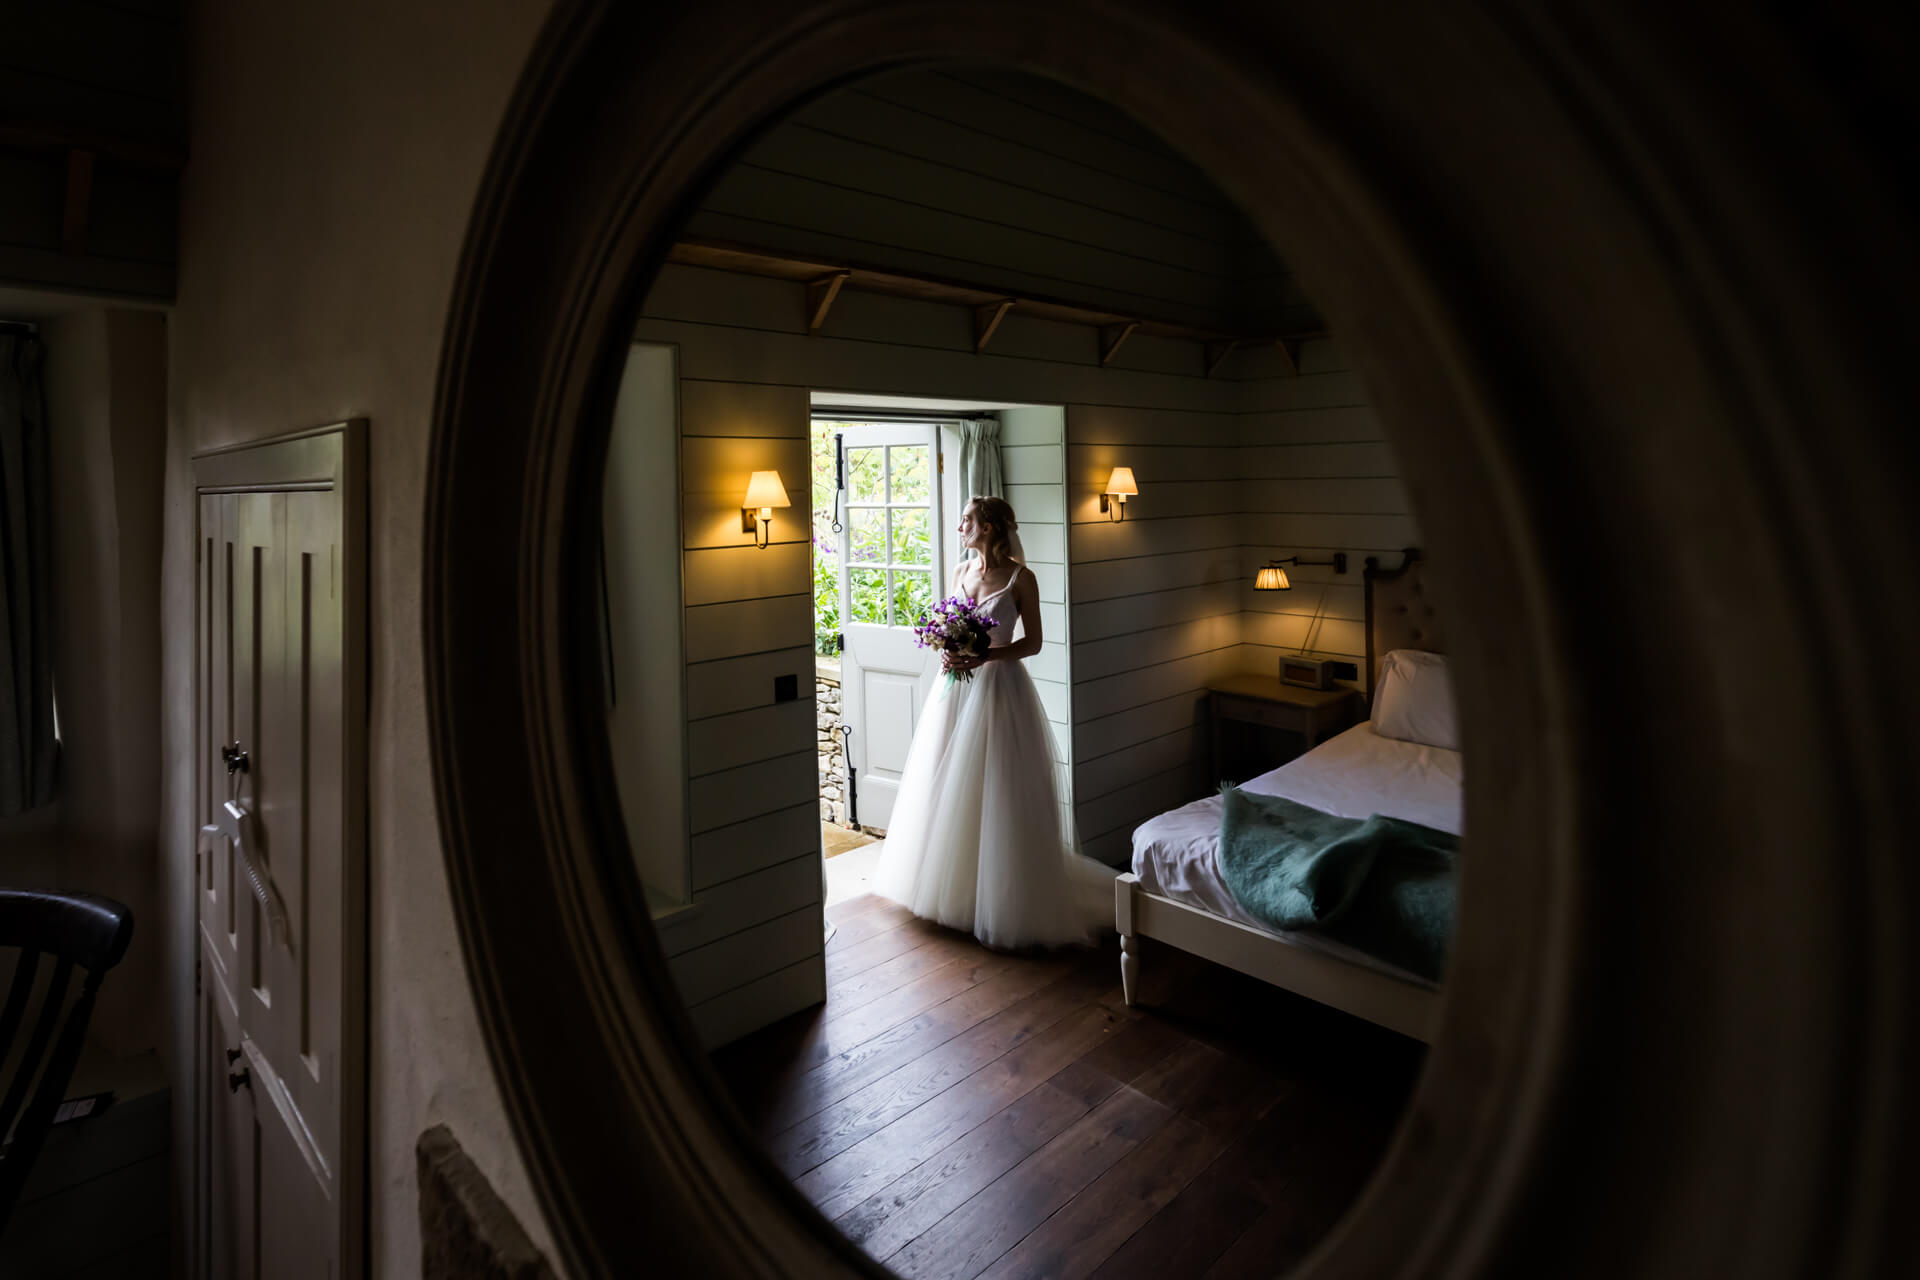 reflection ina mirror of the bride looking out of a window